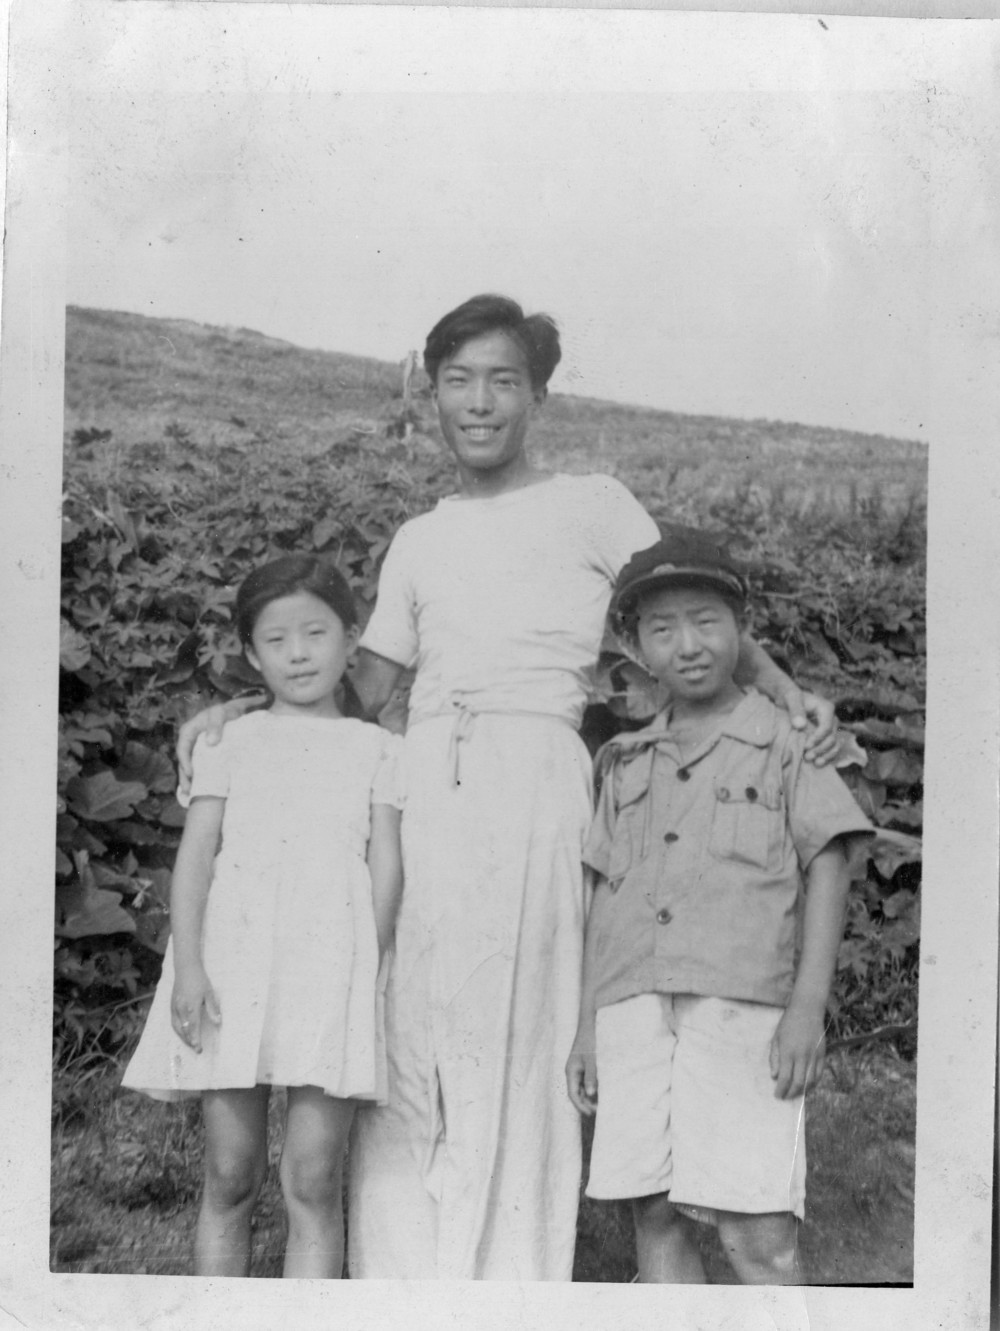 With his sister and brother, circa 1953